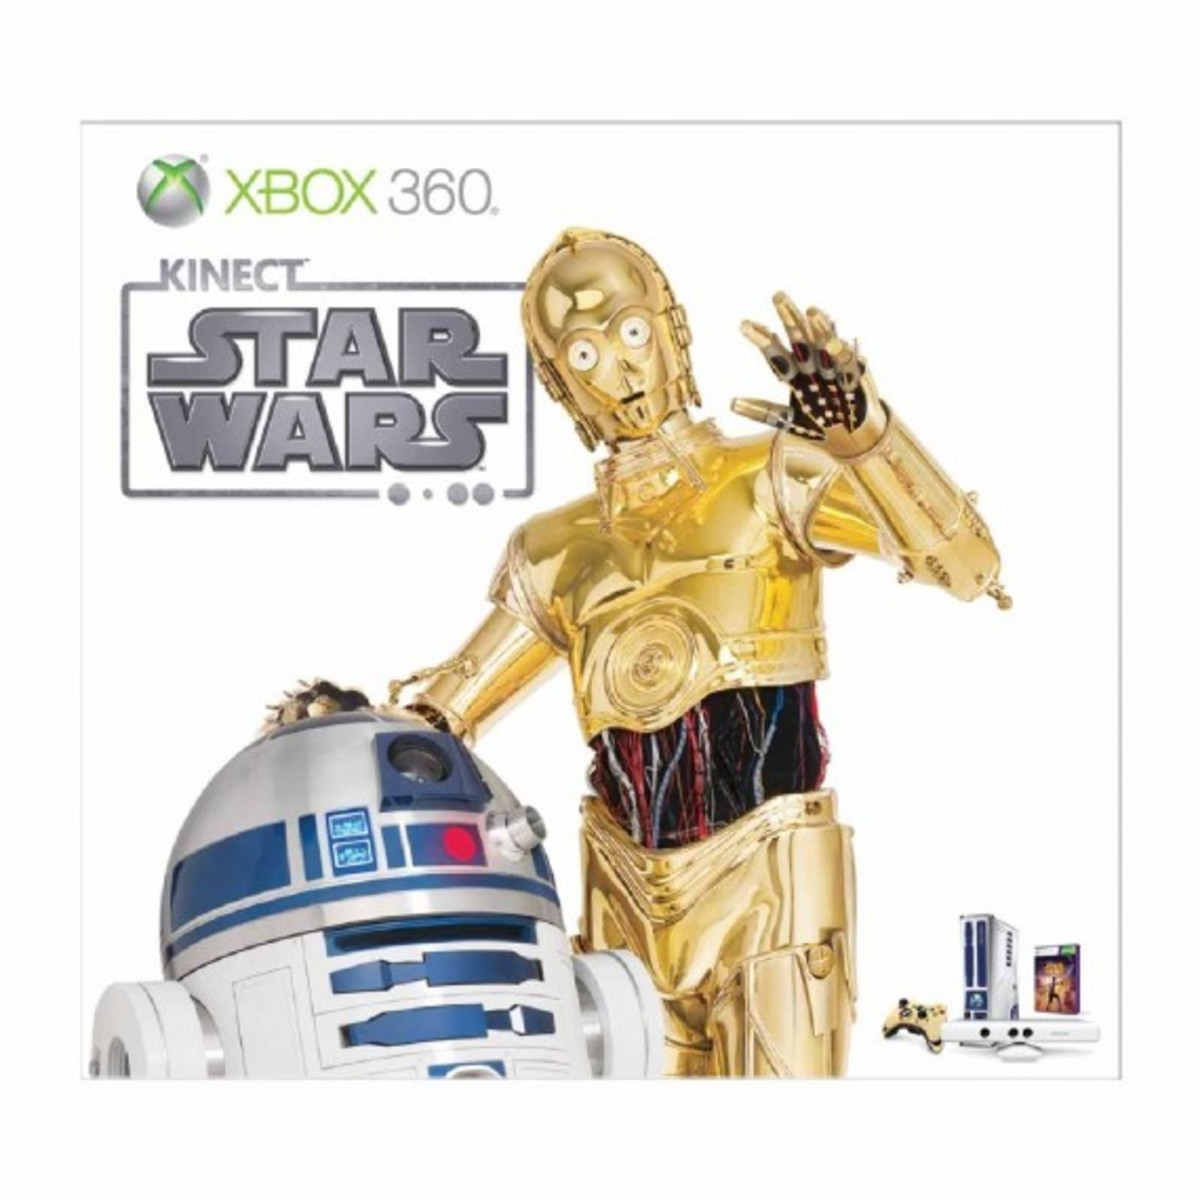 star-wars-xbox-360-kinect-r2d2-c3po-bundle-02